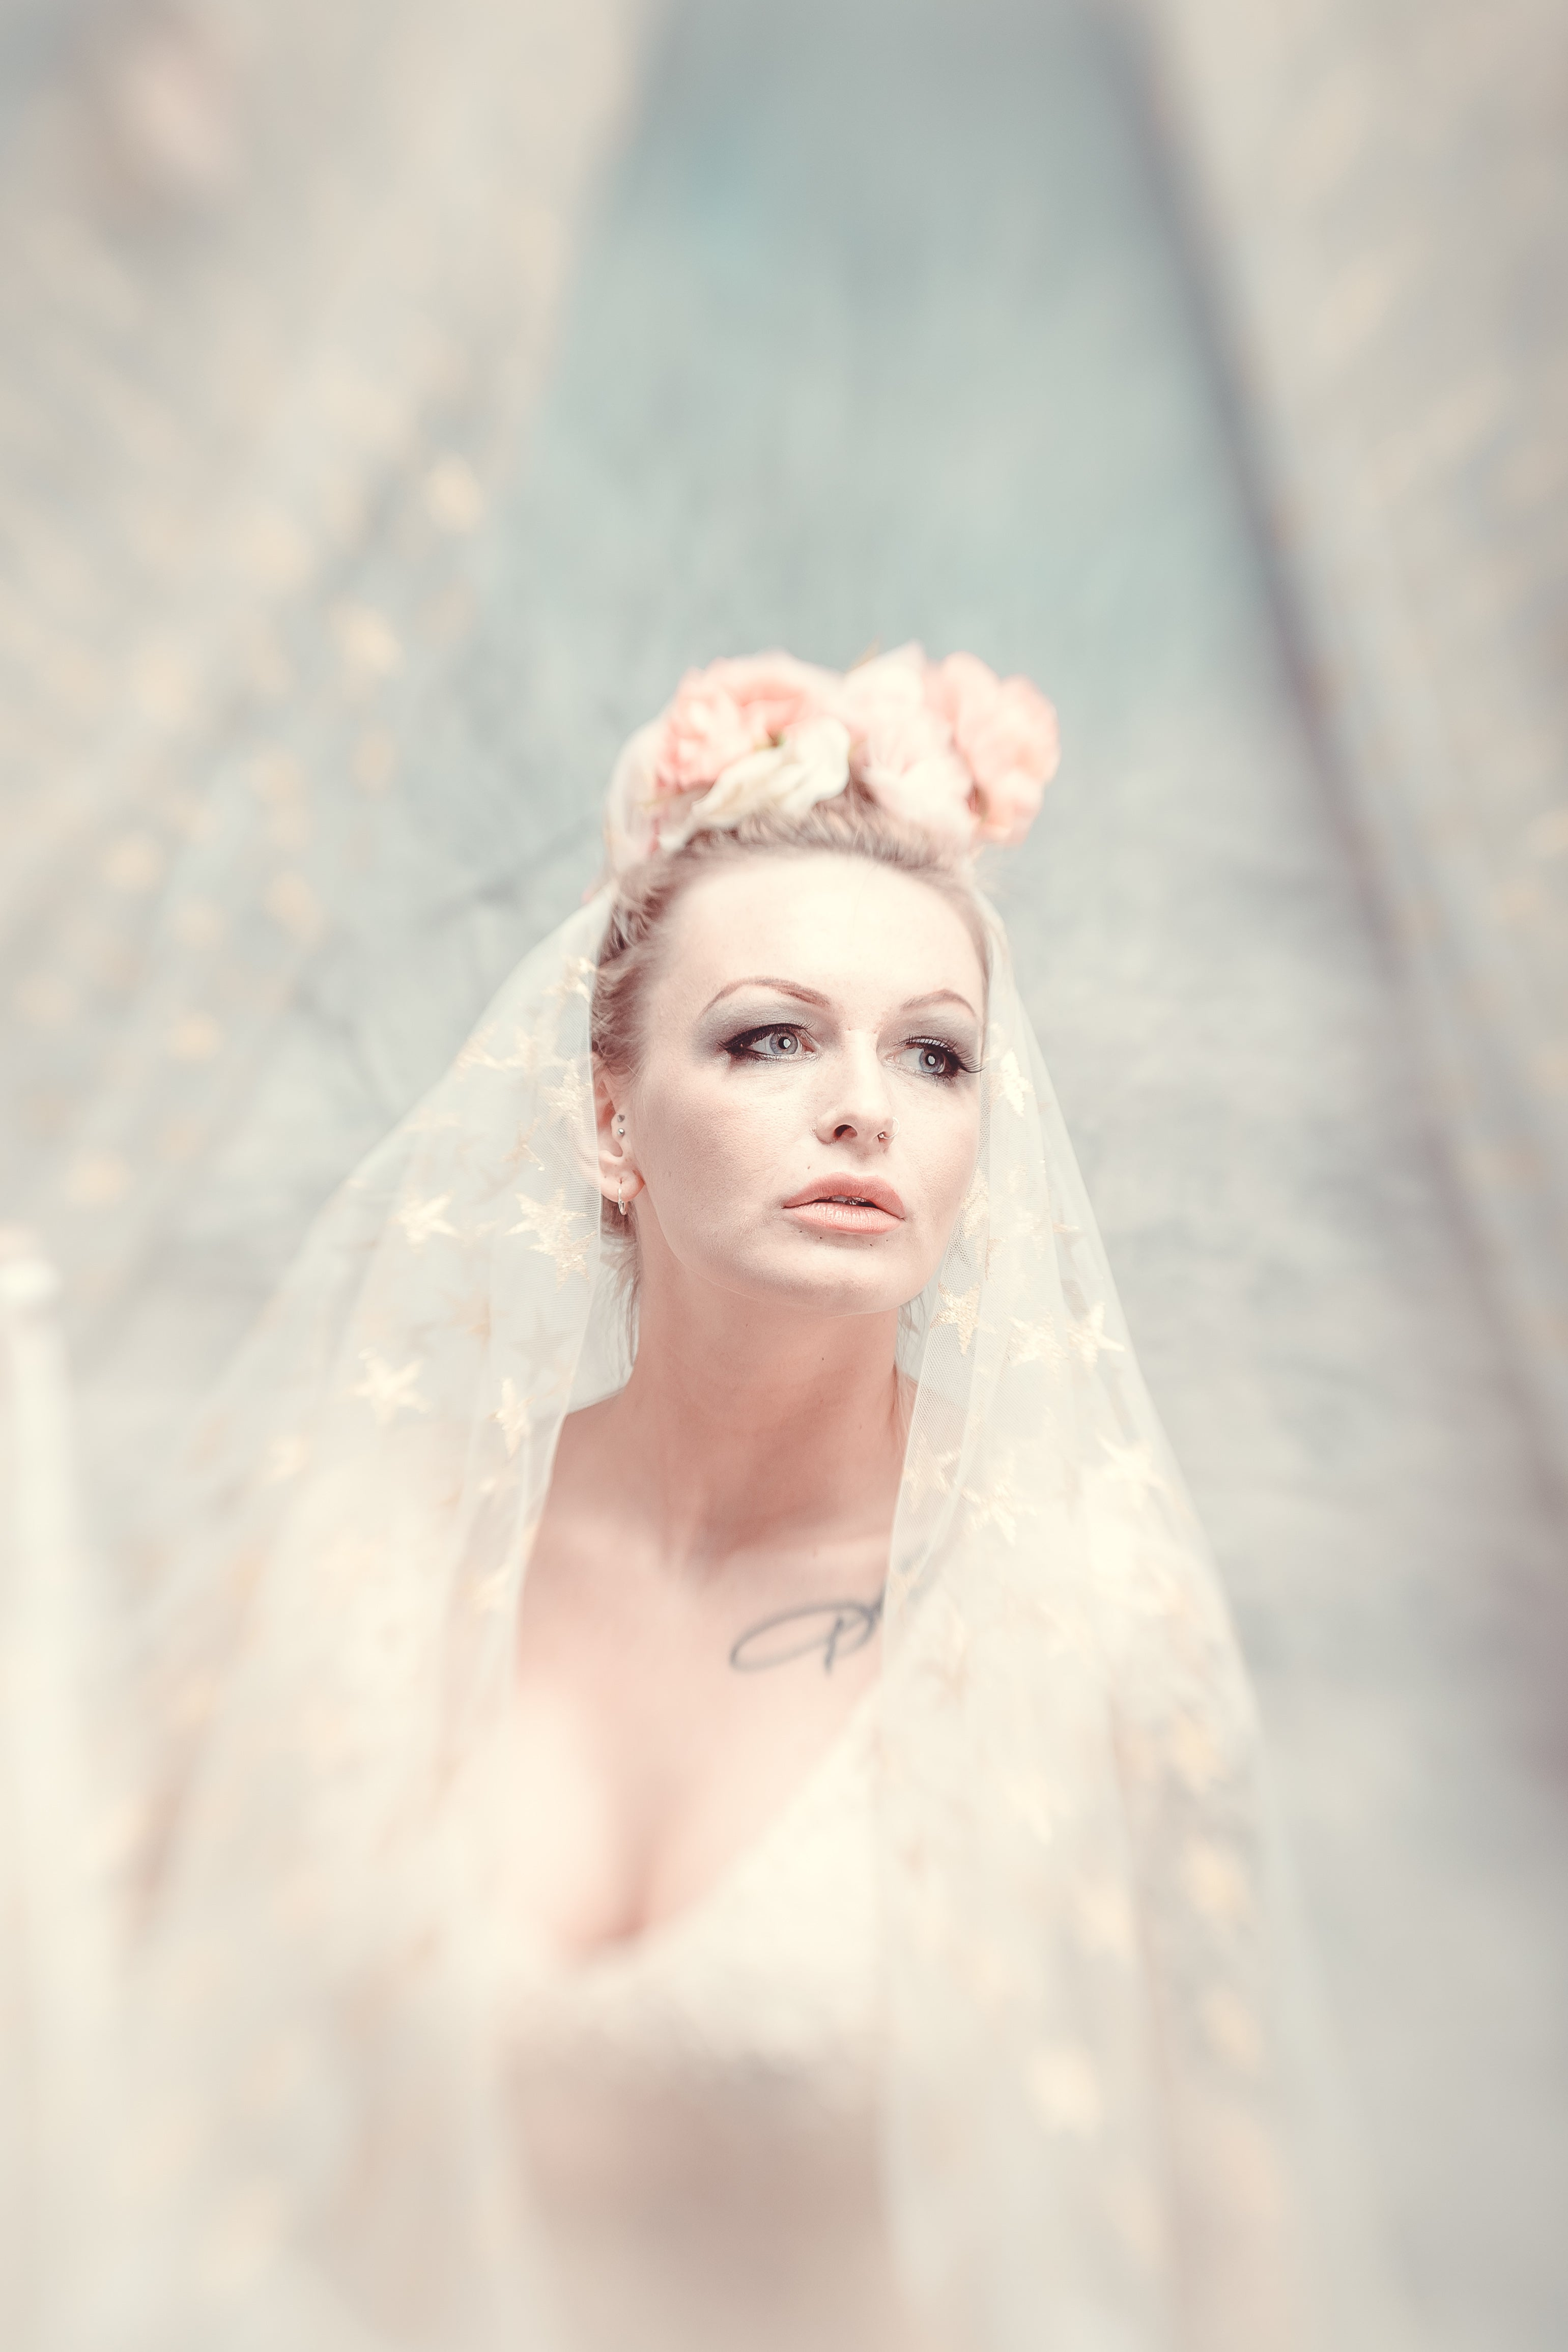 blonde bride with white veil white dress dark makeup emotional face fashion photography Lensbaby journey story Khandie